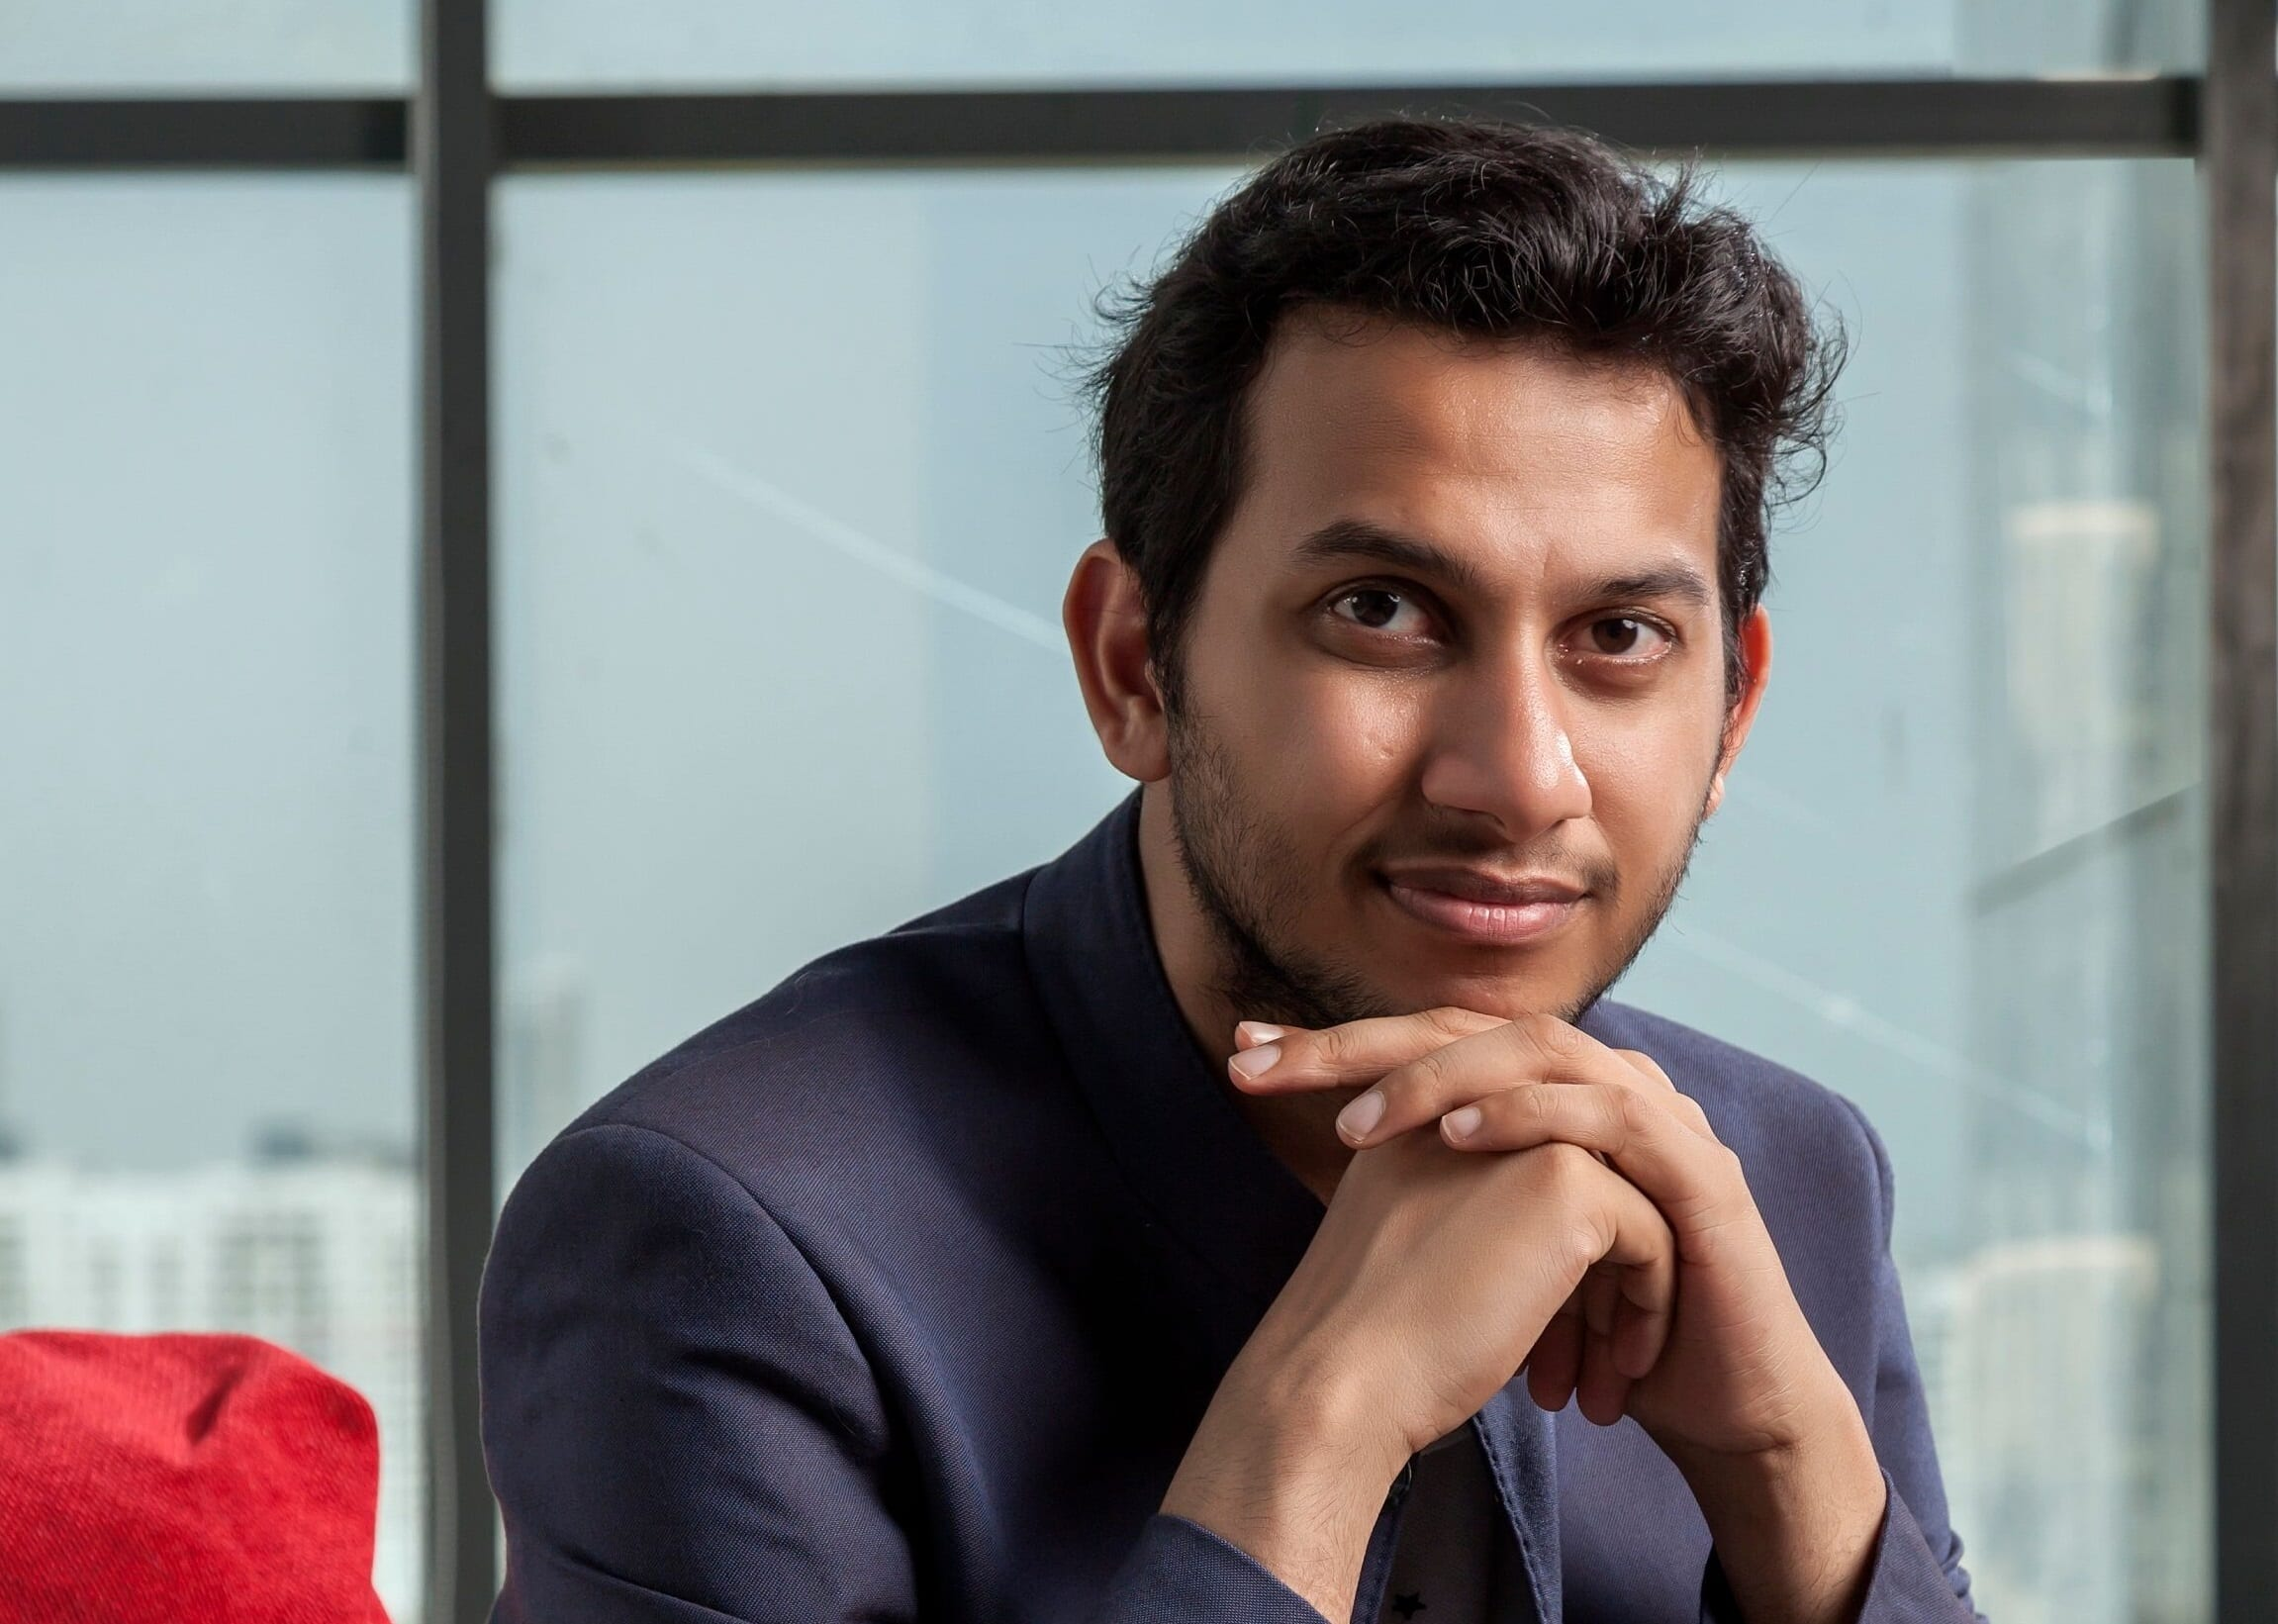 Oyo CEO Ritesh Agarwal touts hospitality start-up despite criticism